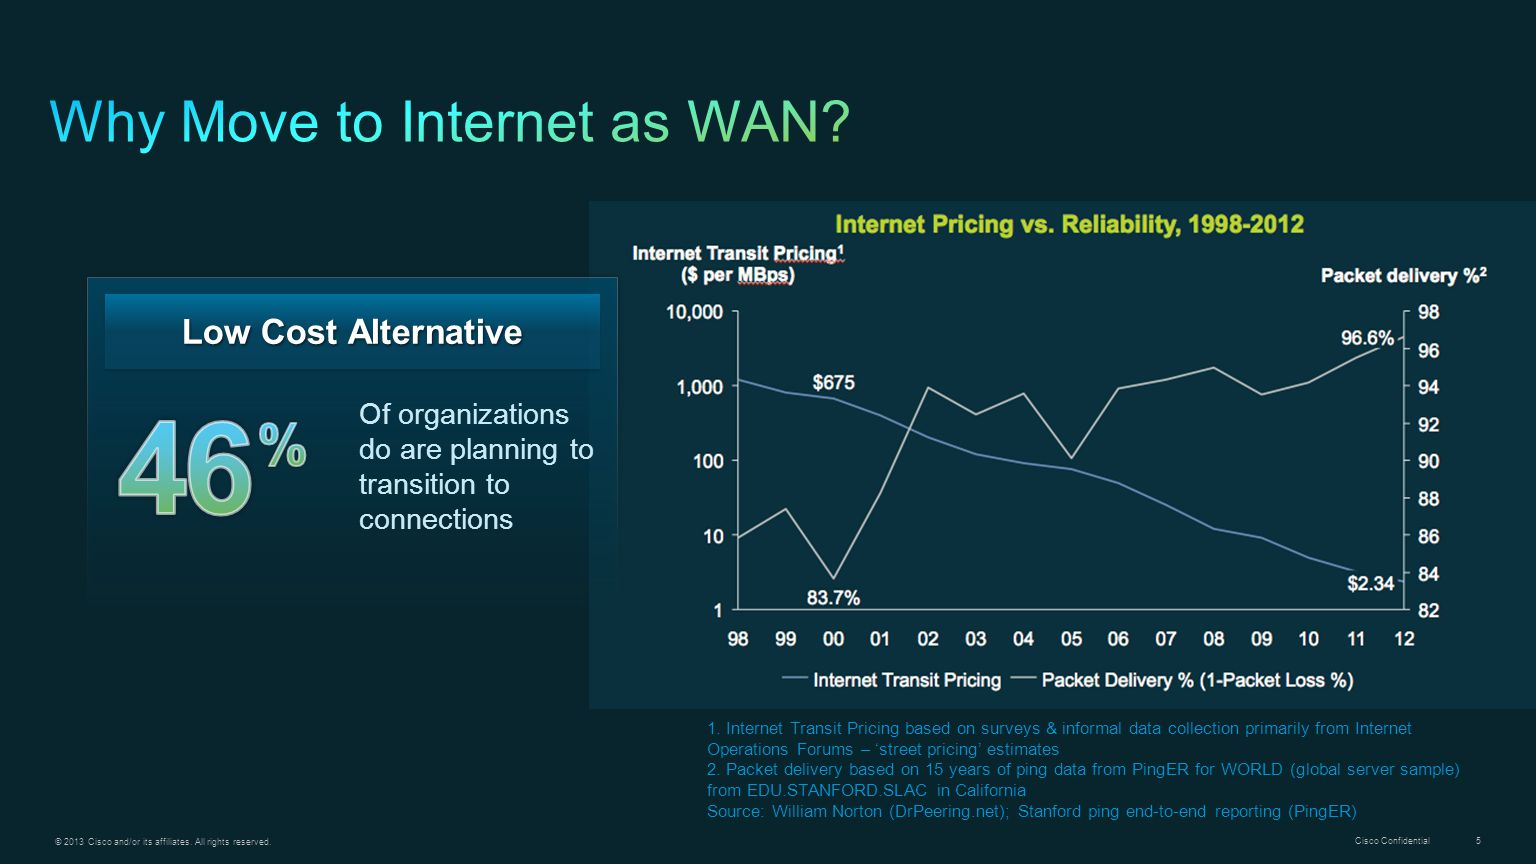 Why Move to Internet as WAN